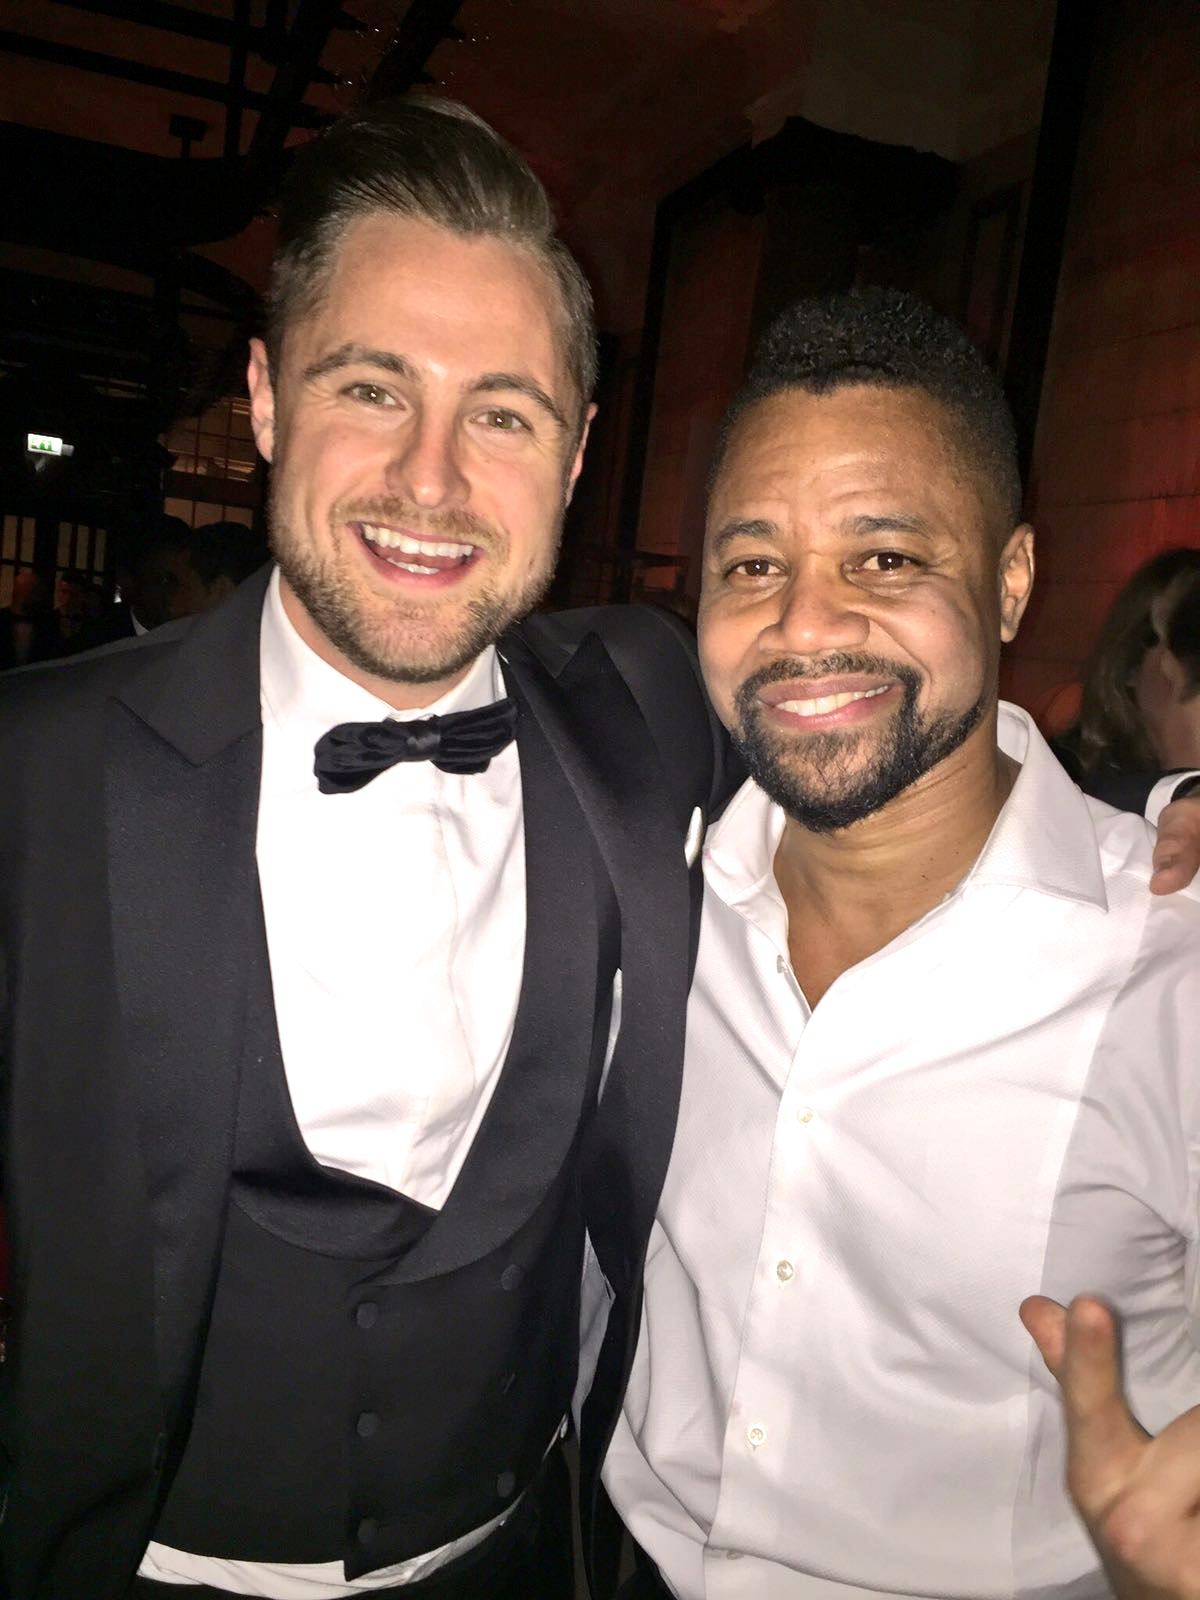 Cuba Gooding Junior and Ben Heath at the BAFTA's Harvey Weinstein Afterparty 2016